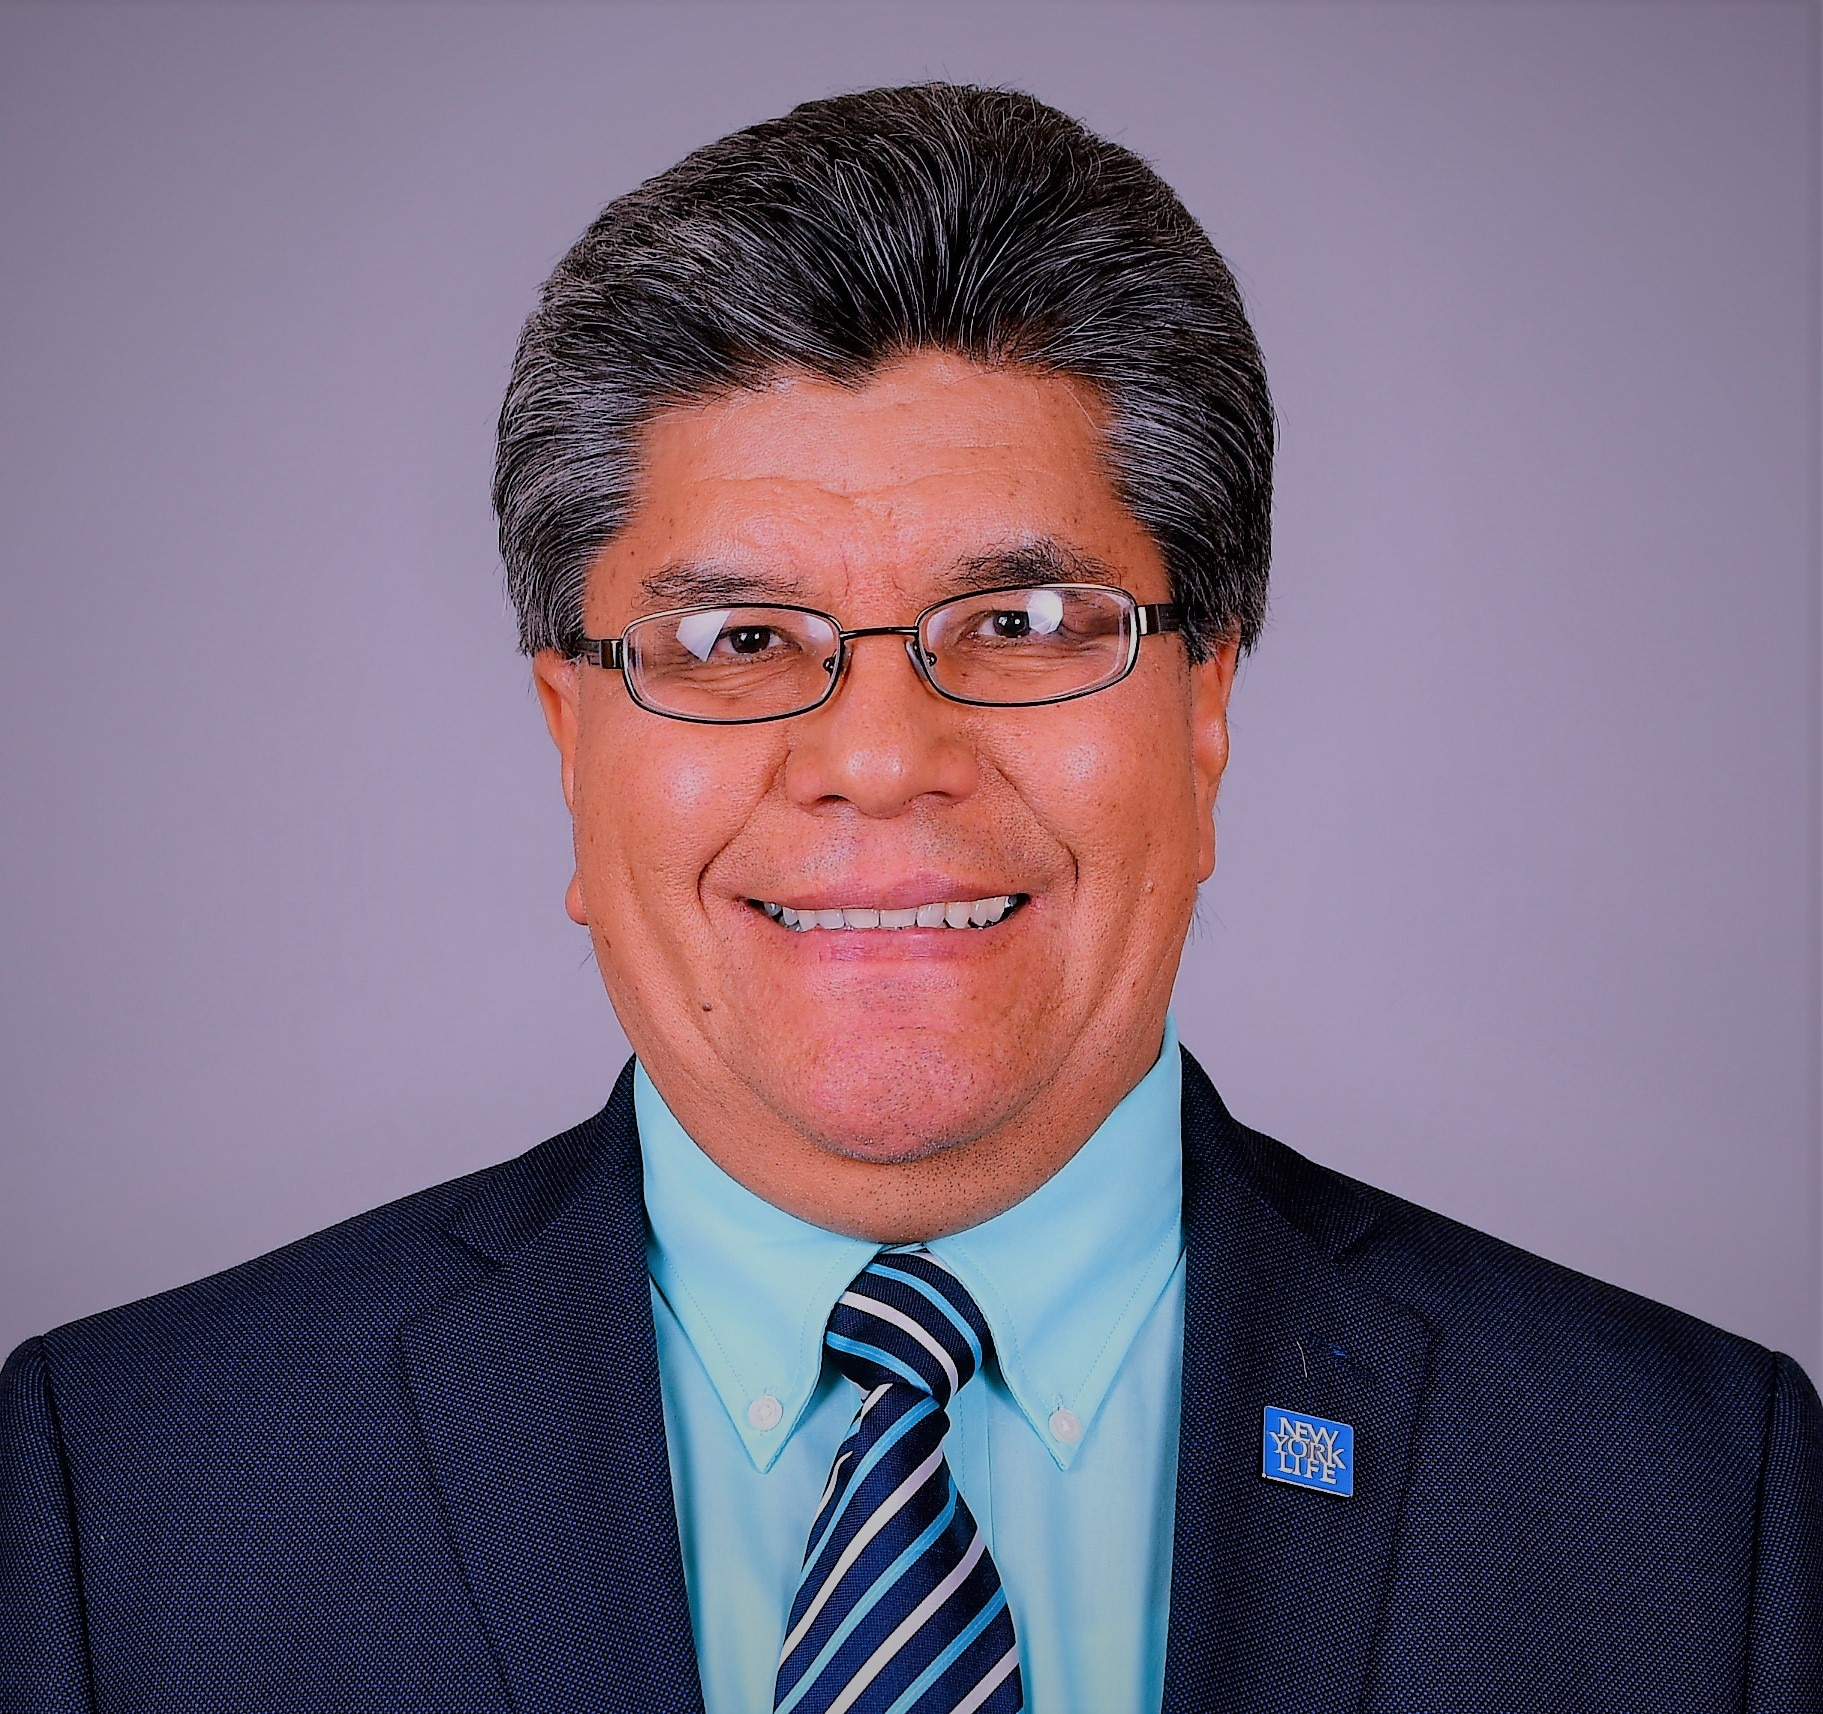 JOSE CACERES Financial Professional & Insurance Agent